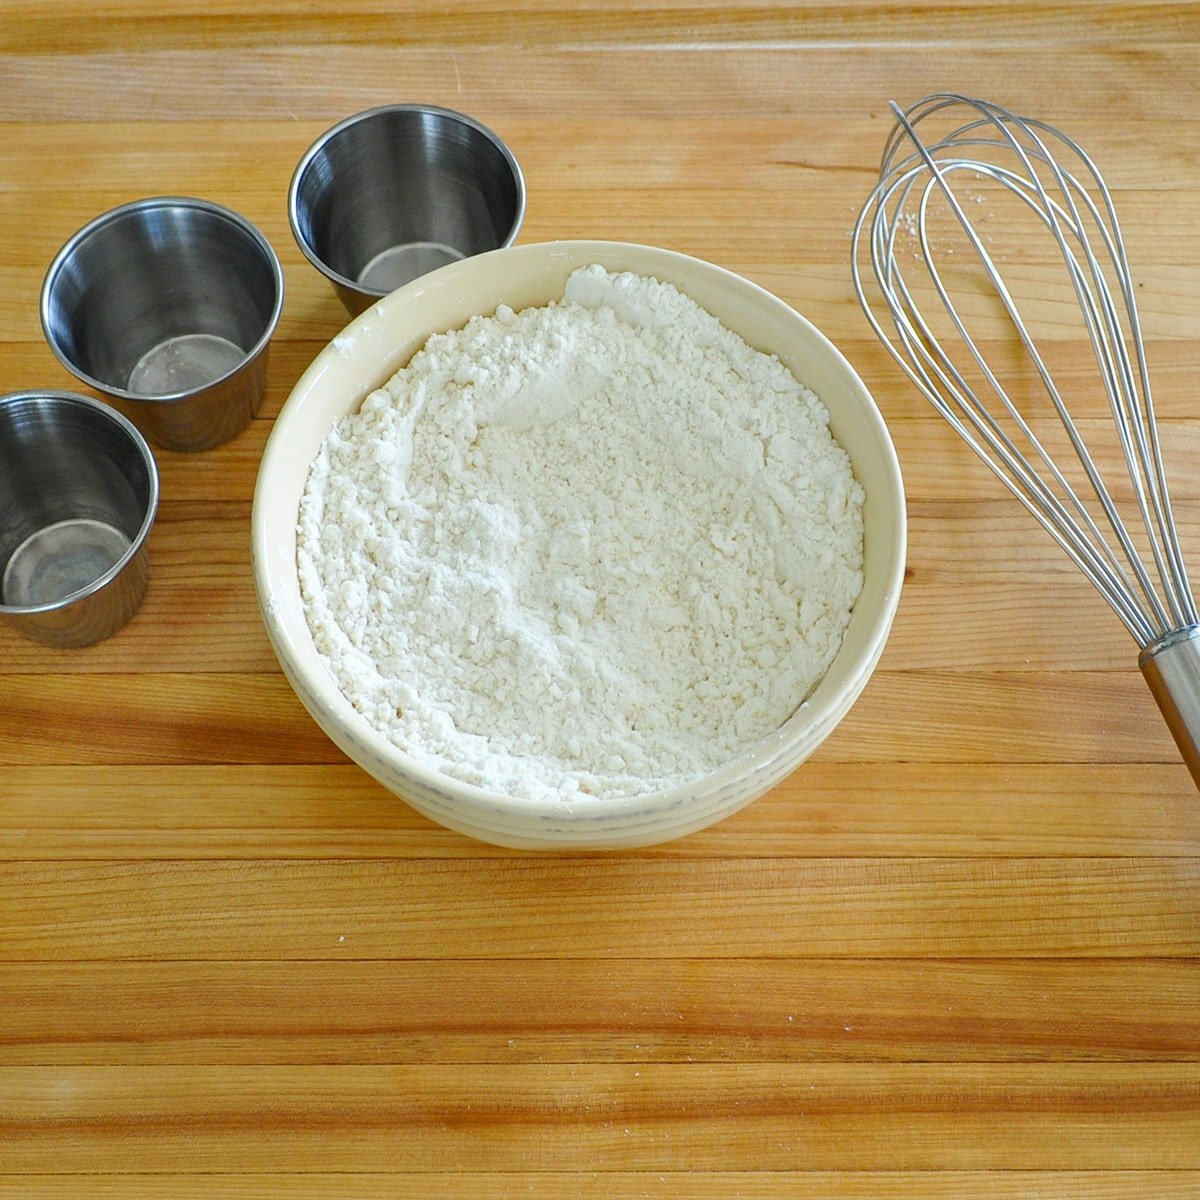 Flour mixed with baking powder, baking soda, and salt in a cream bowl next to a whisk